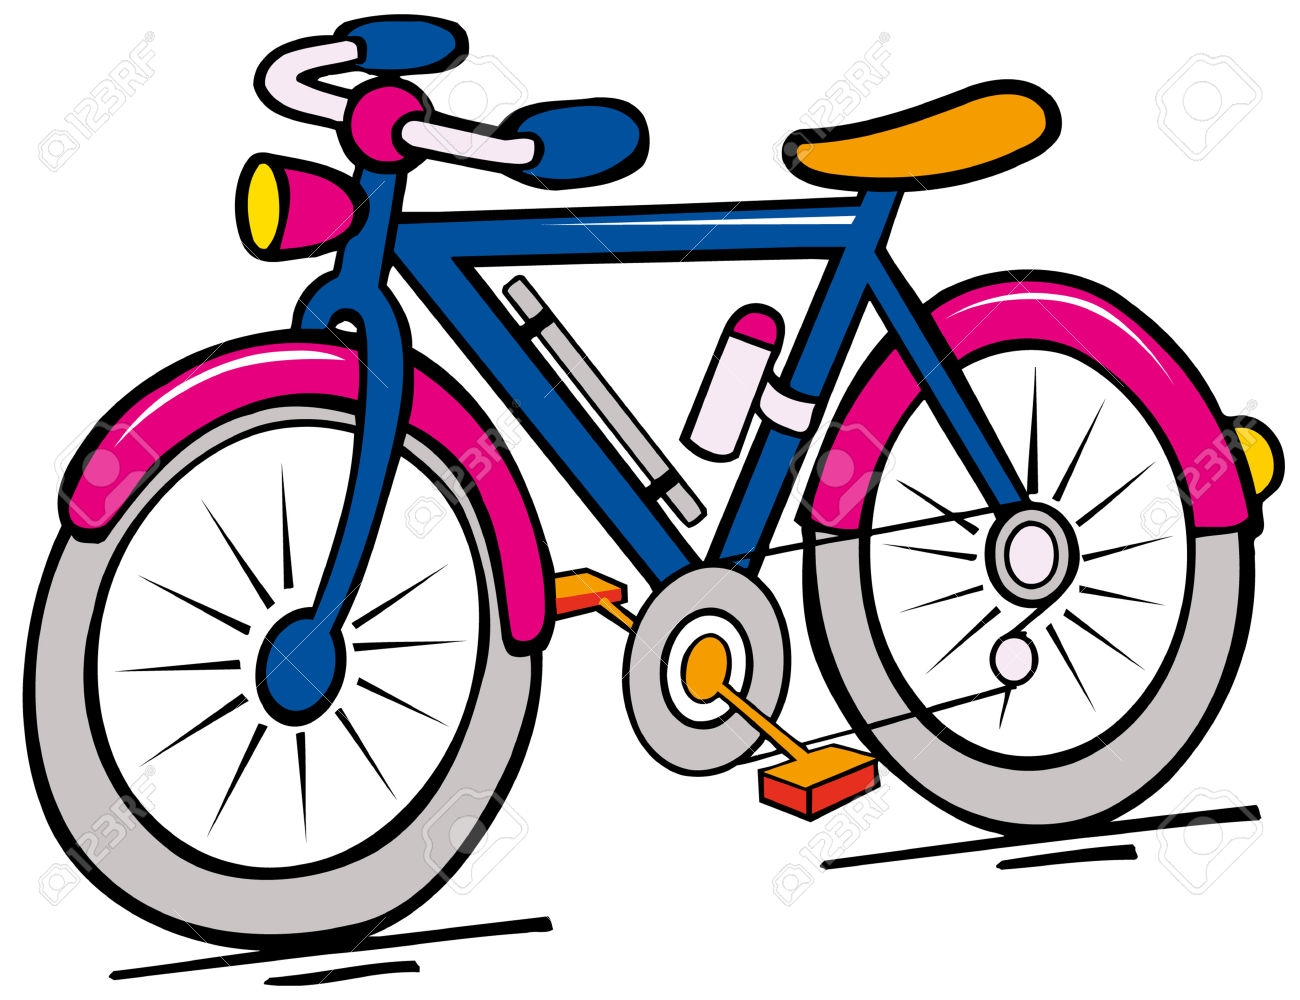 bike clipart at getdrawings com free for personal use bike clipart of your choice vector balloons free download vector balloon images